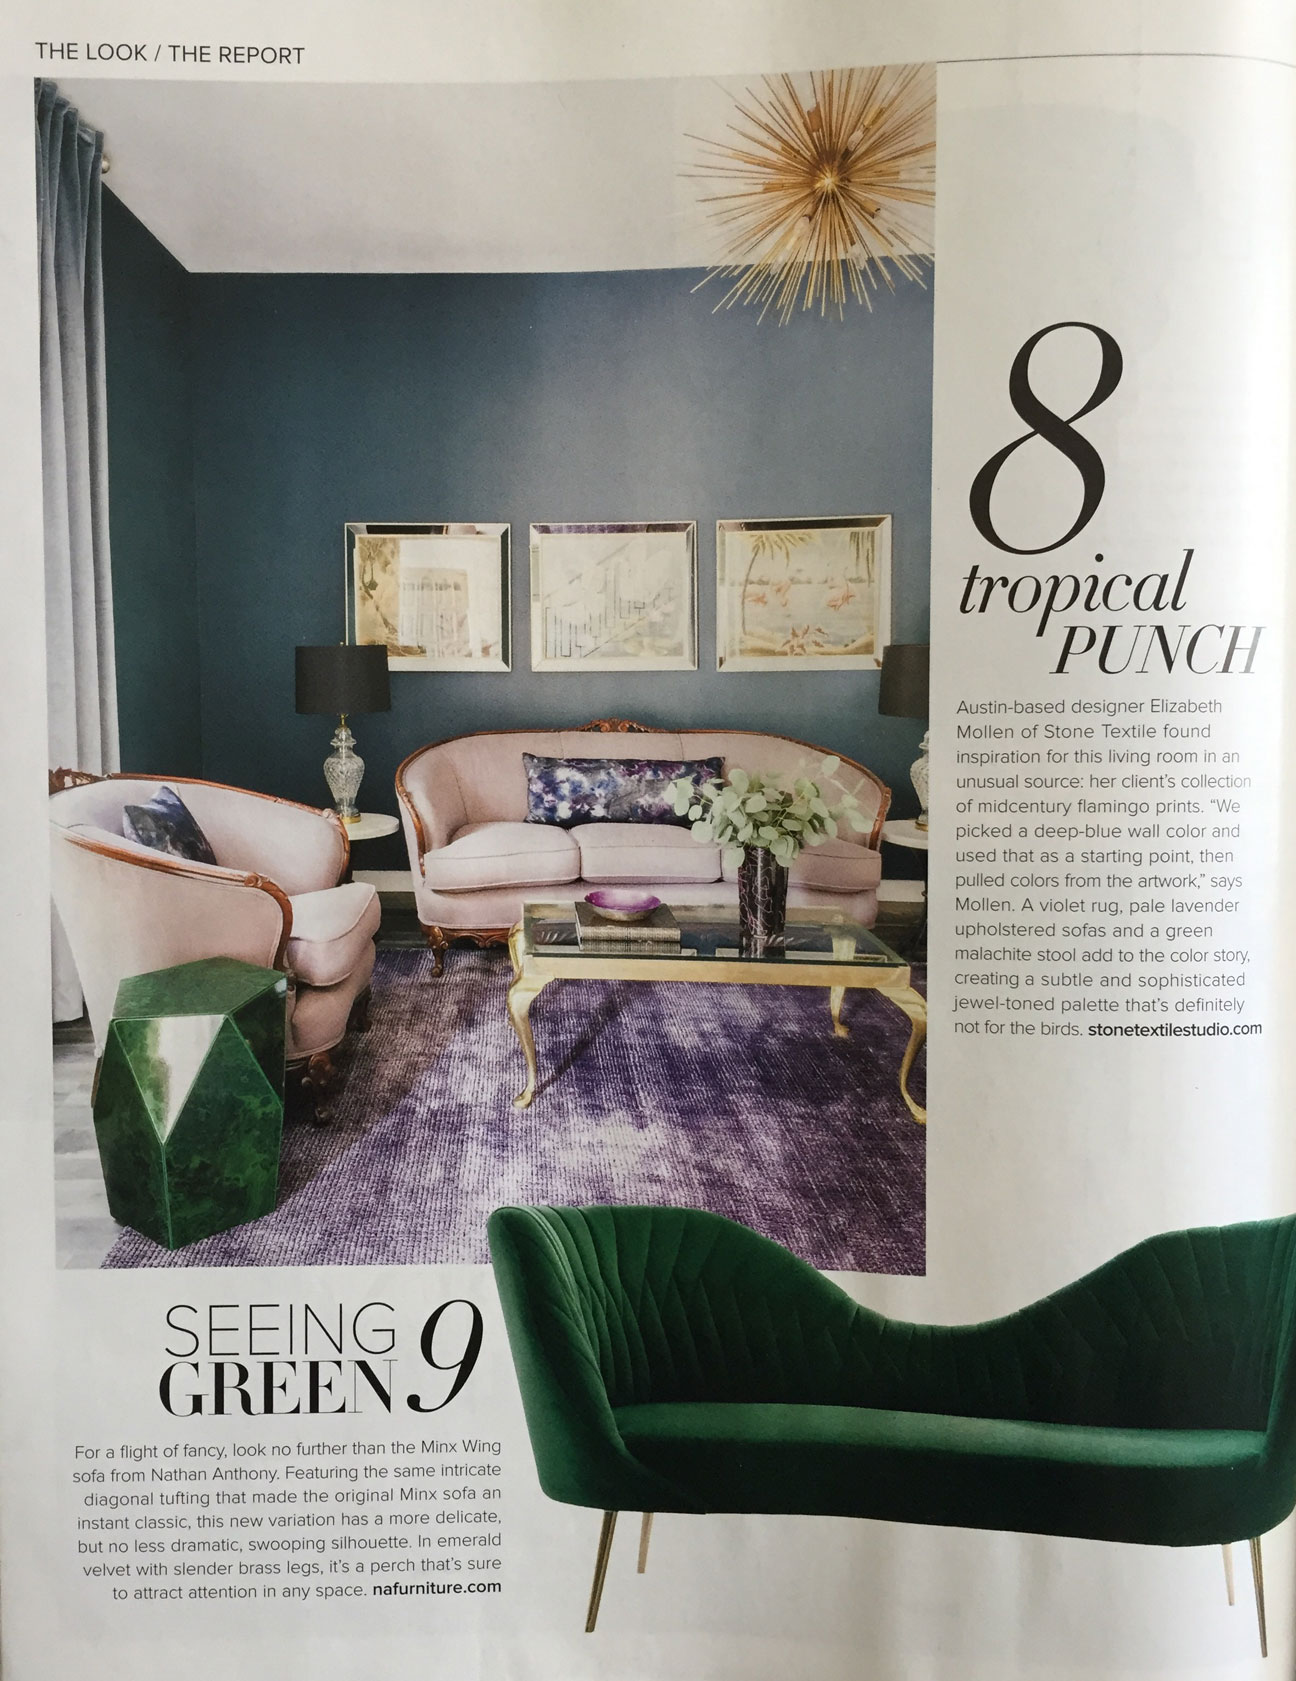 luxe-2017-march-april-article